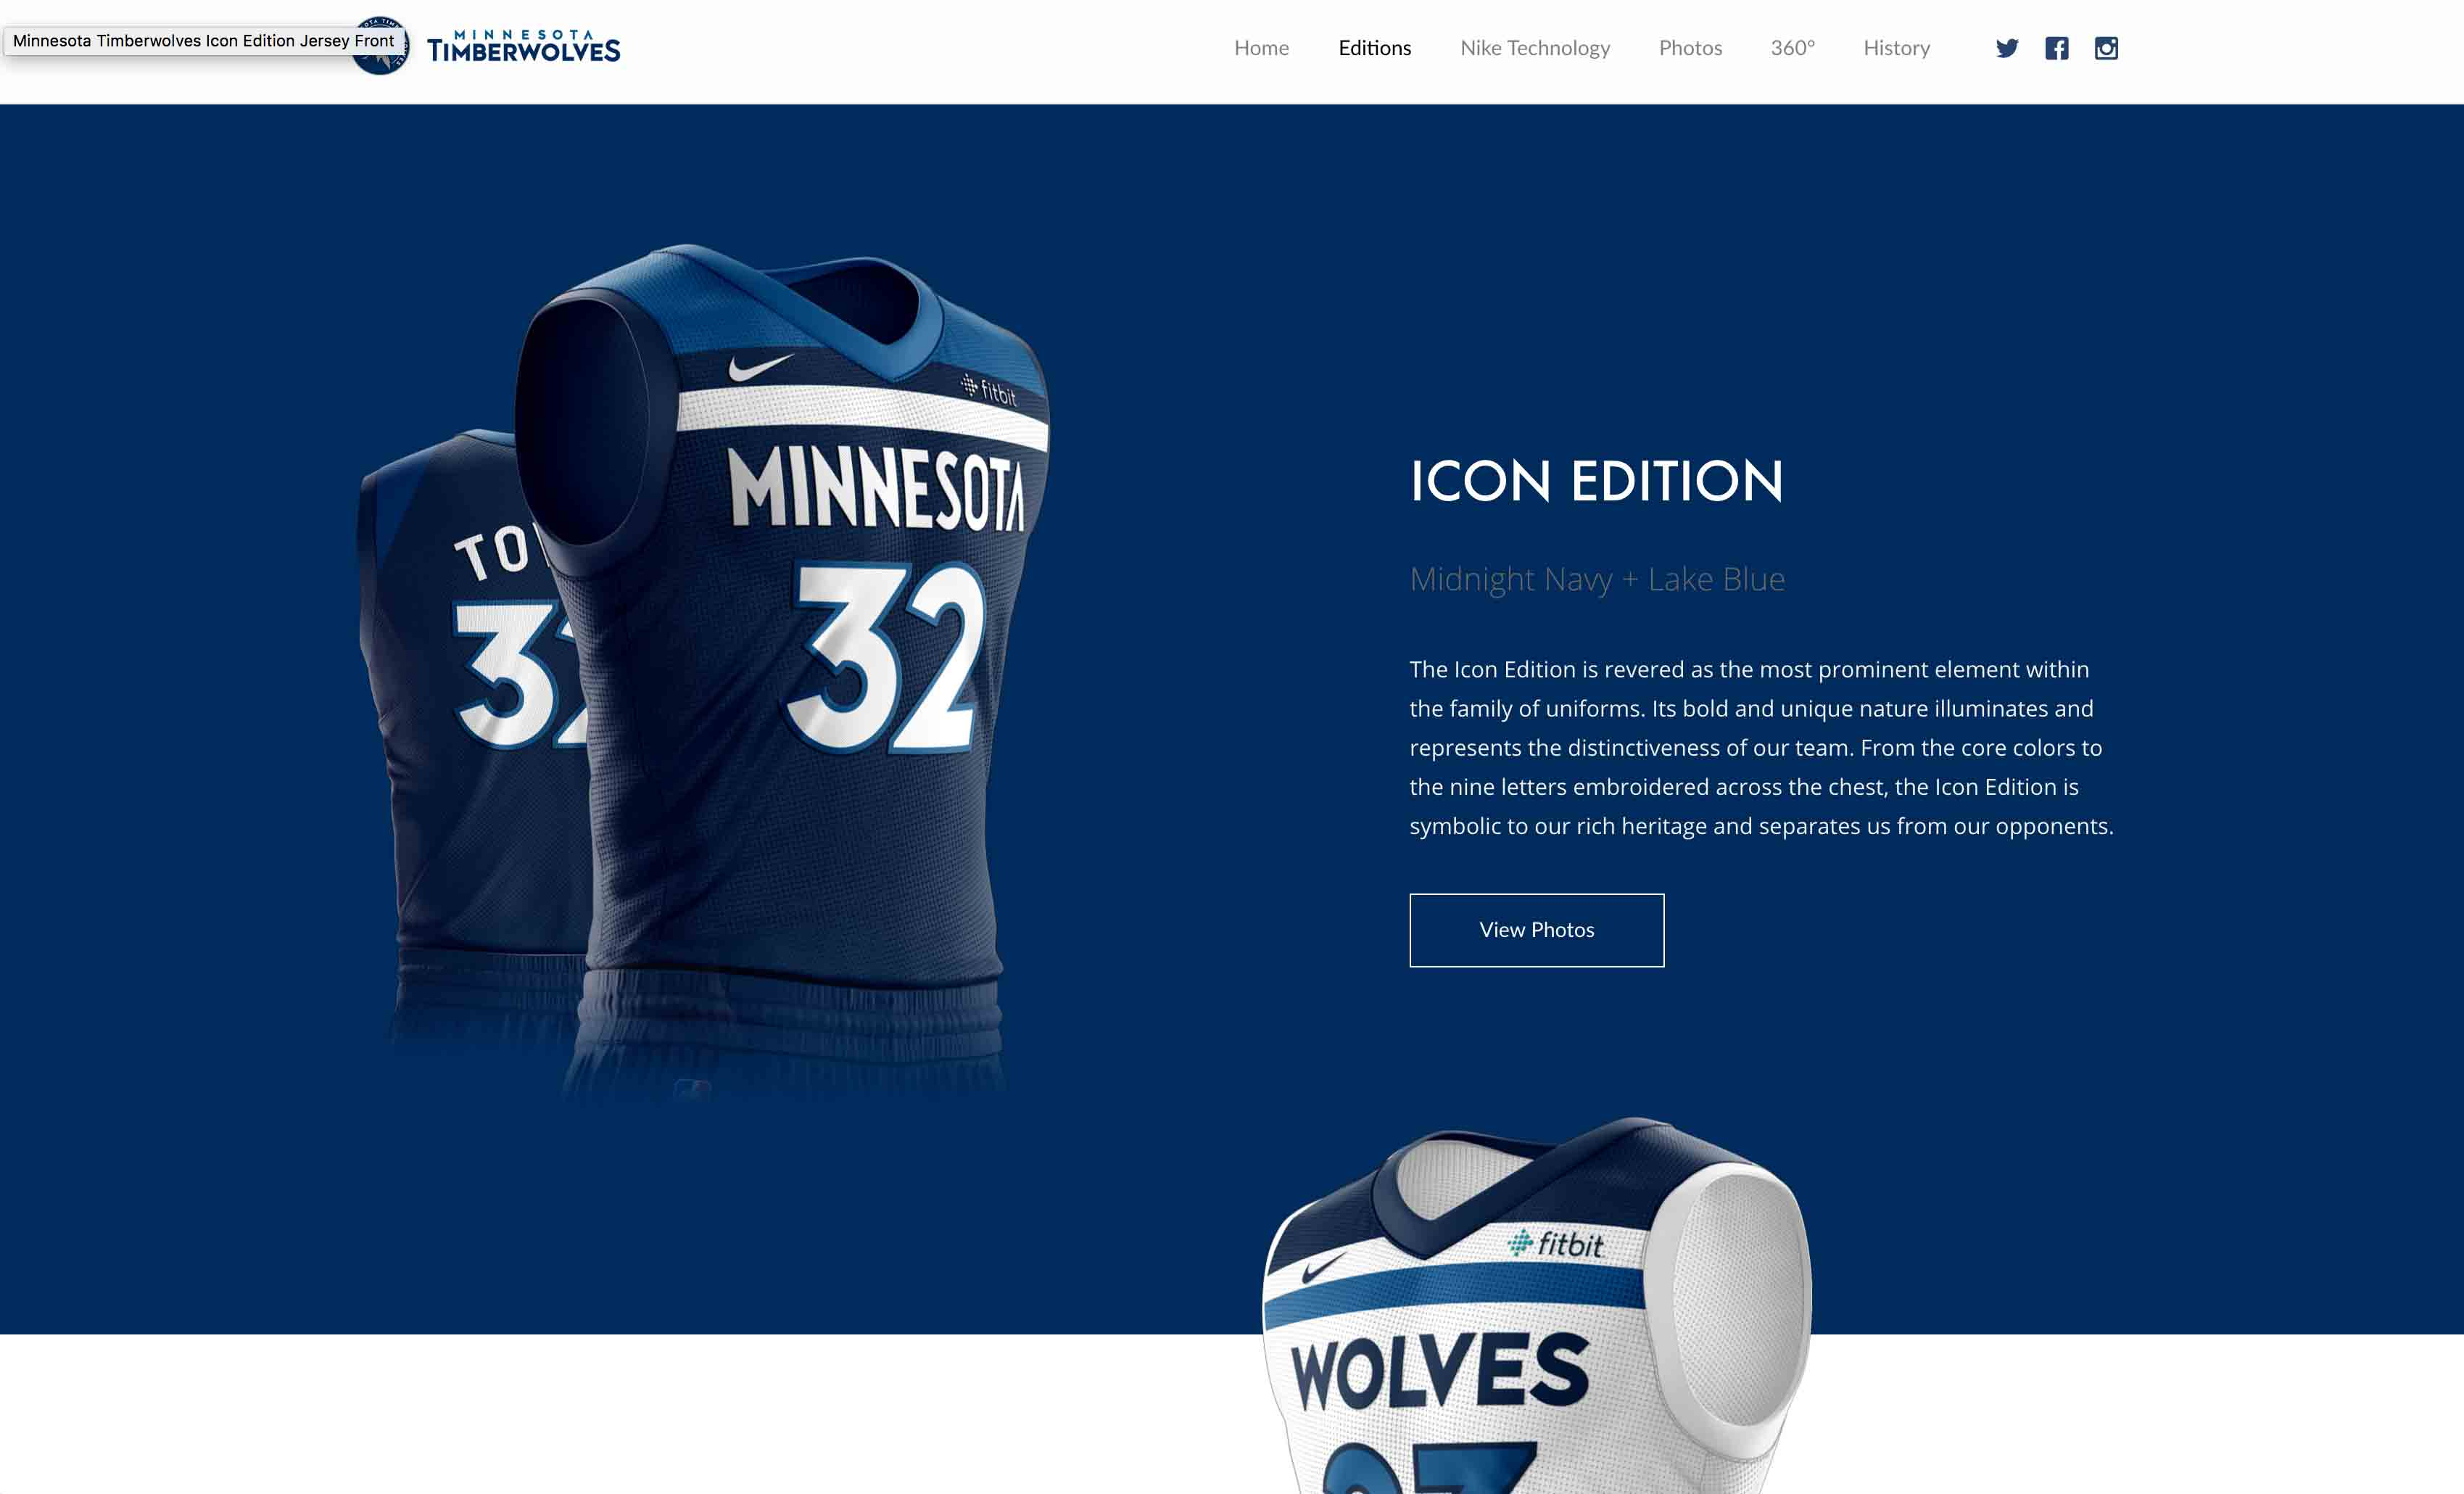 MN Timberwolves New Threads Project: Desktop View, Icon Edition Section